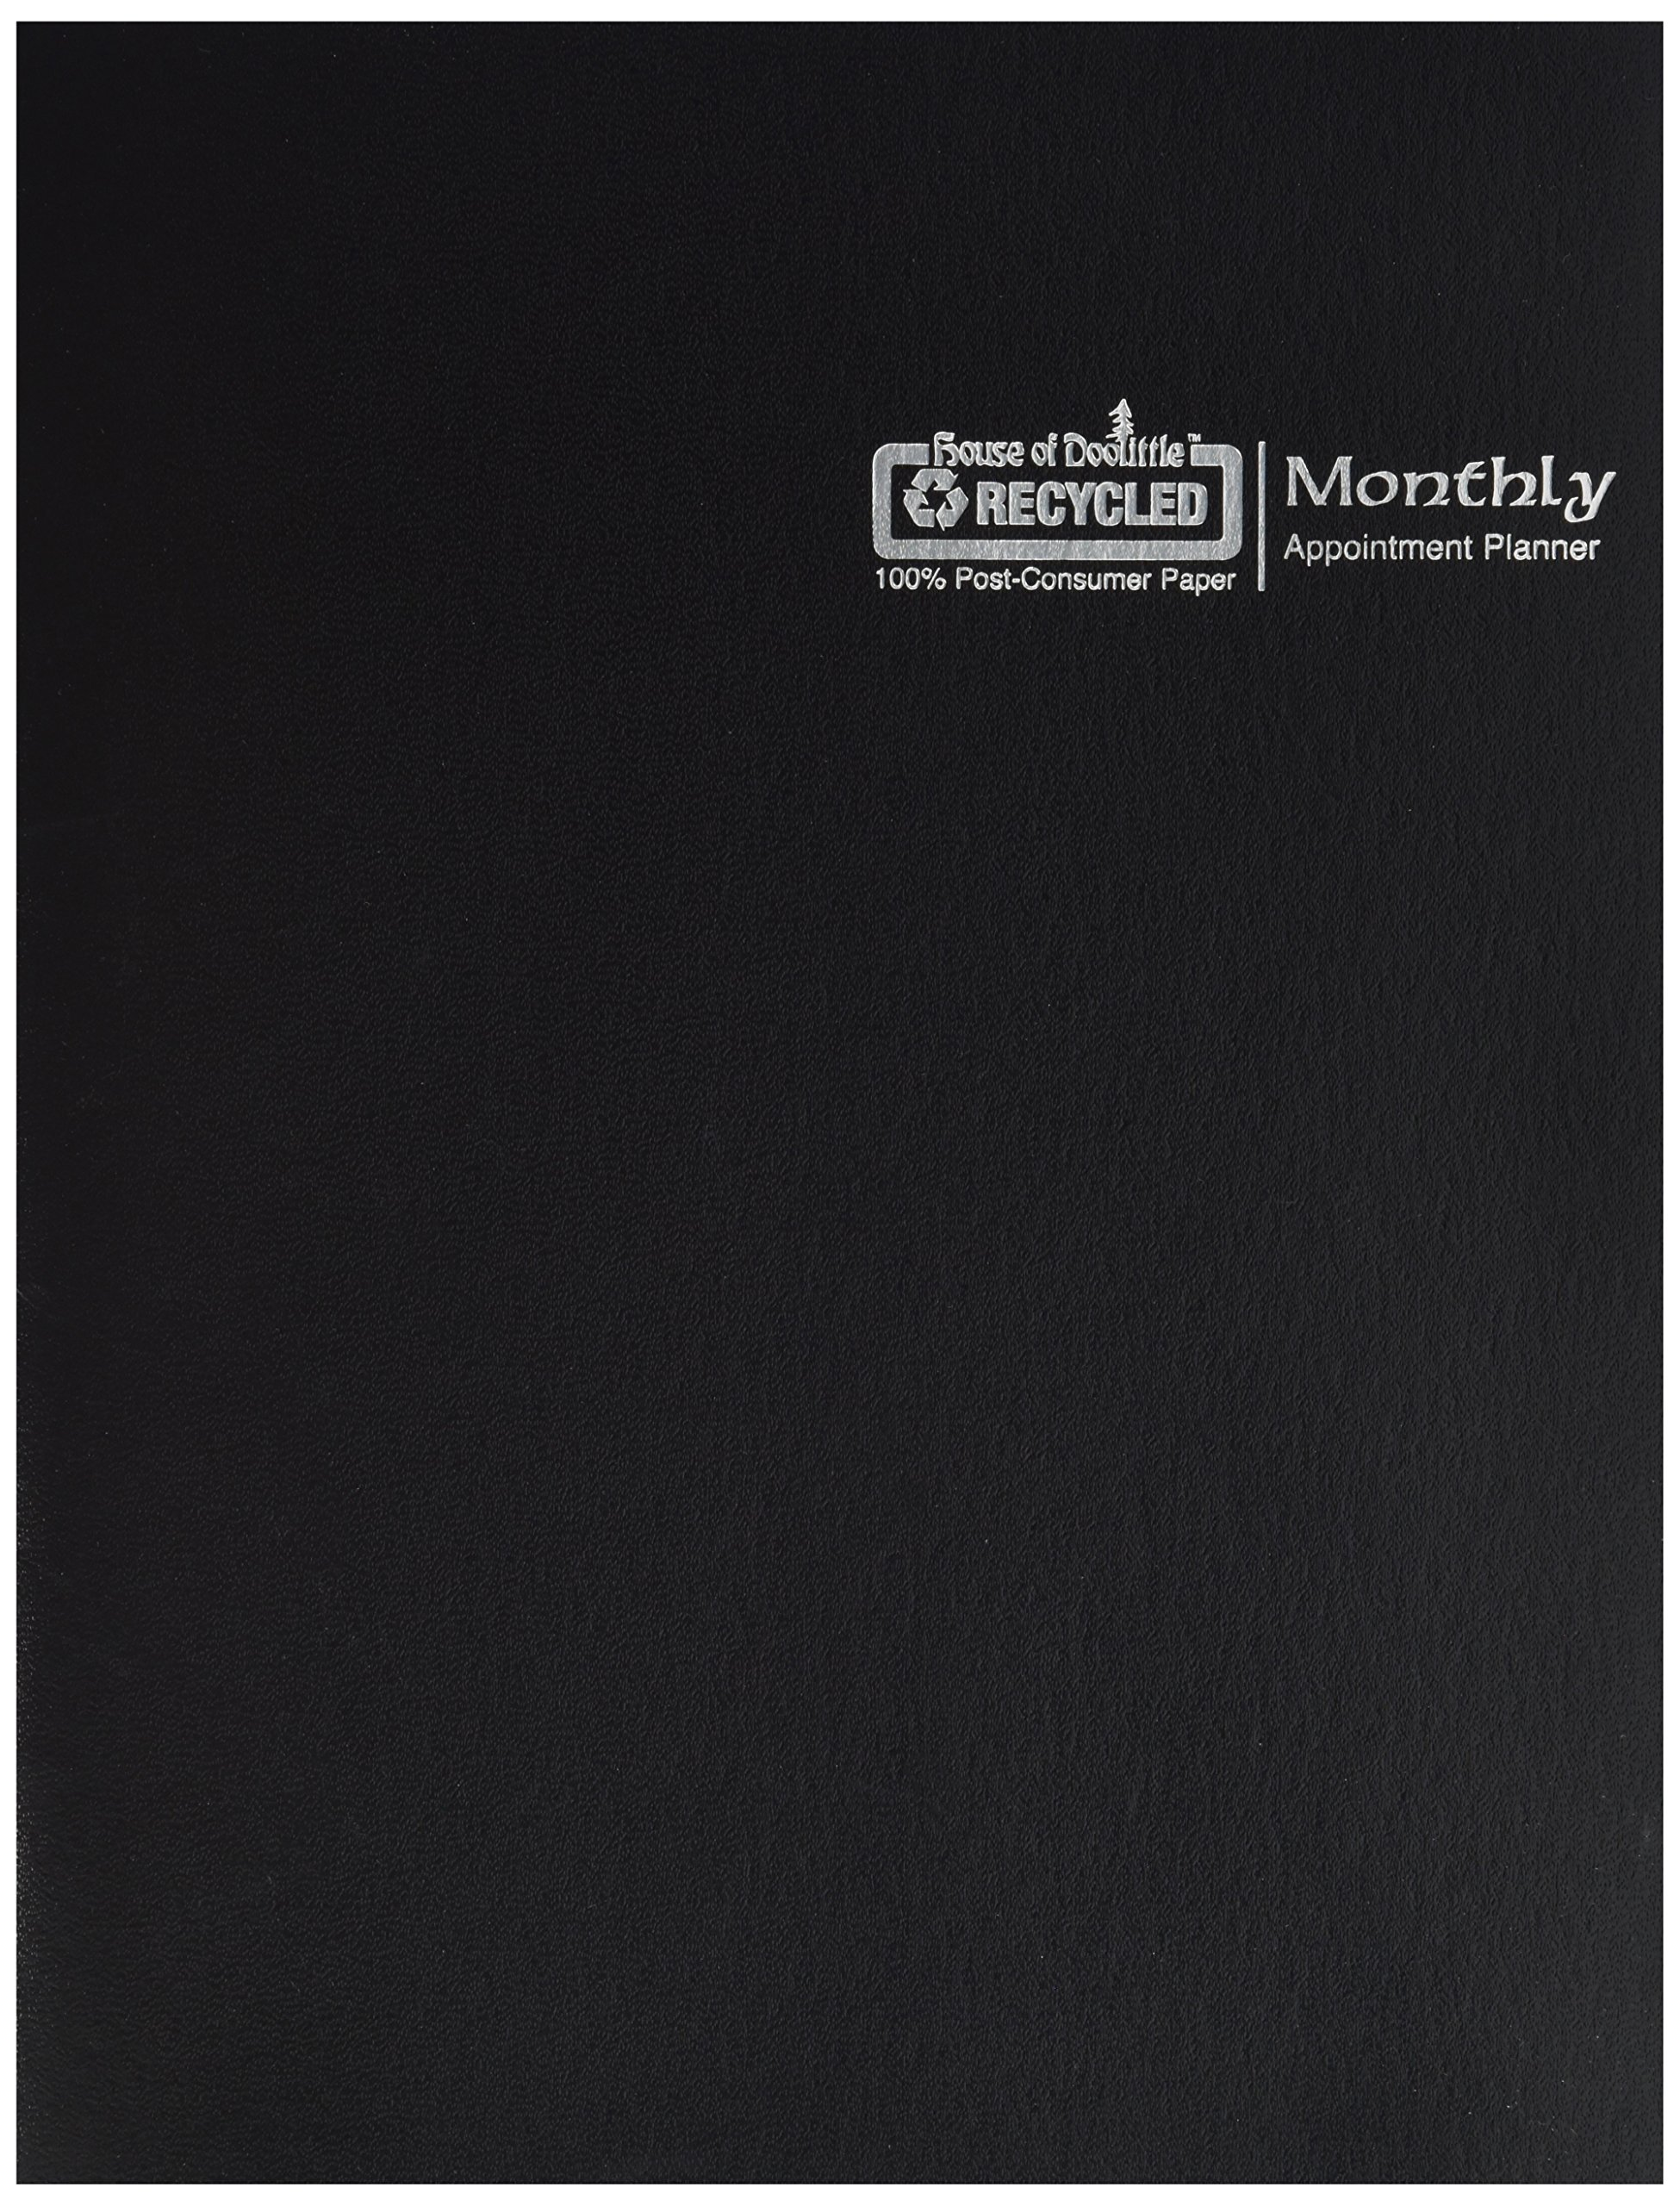 House of Doolittle 2019 Economy Calendar Planner, Monthly, Black Cover, 8.5 x 11 Inches, December - January (HOD26002-19)